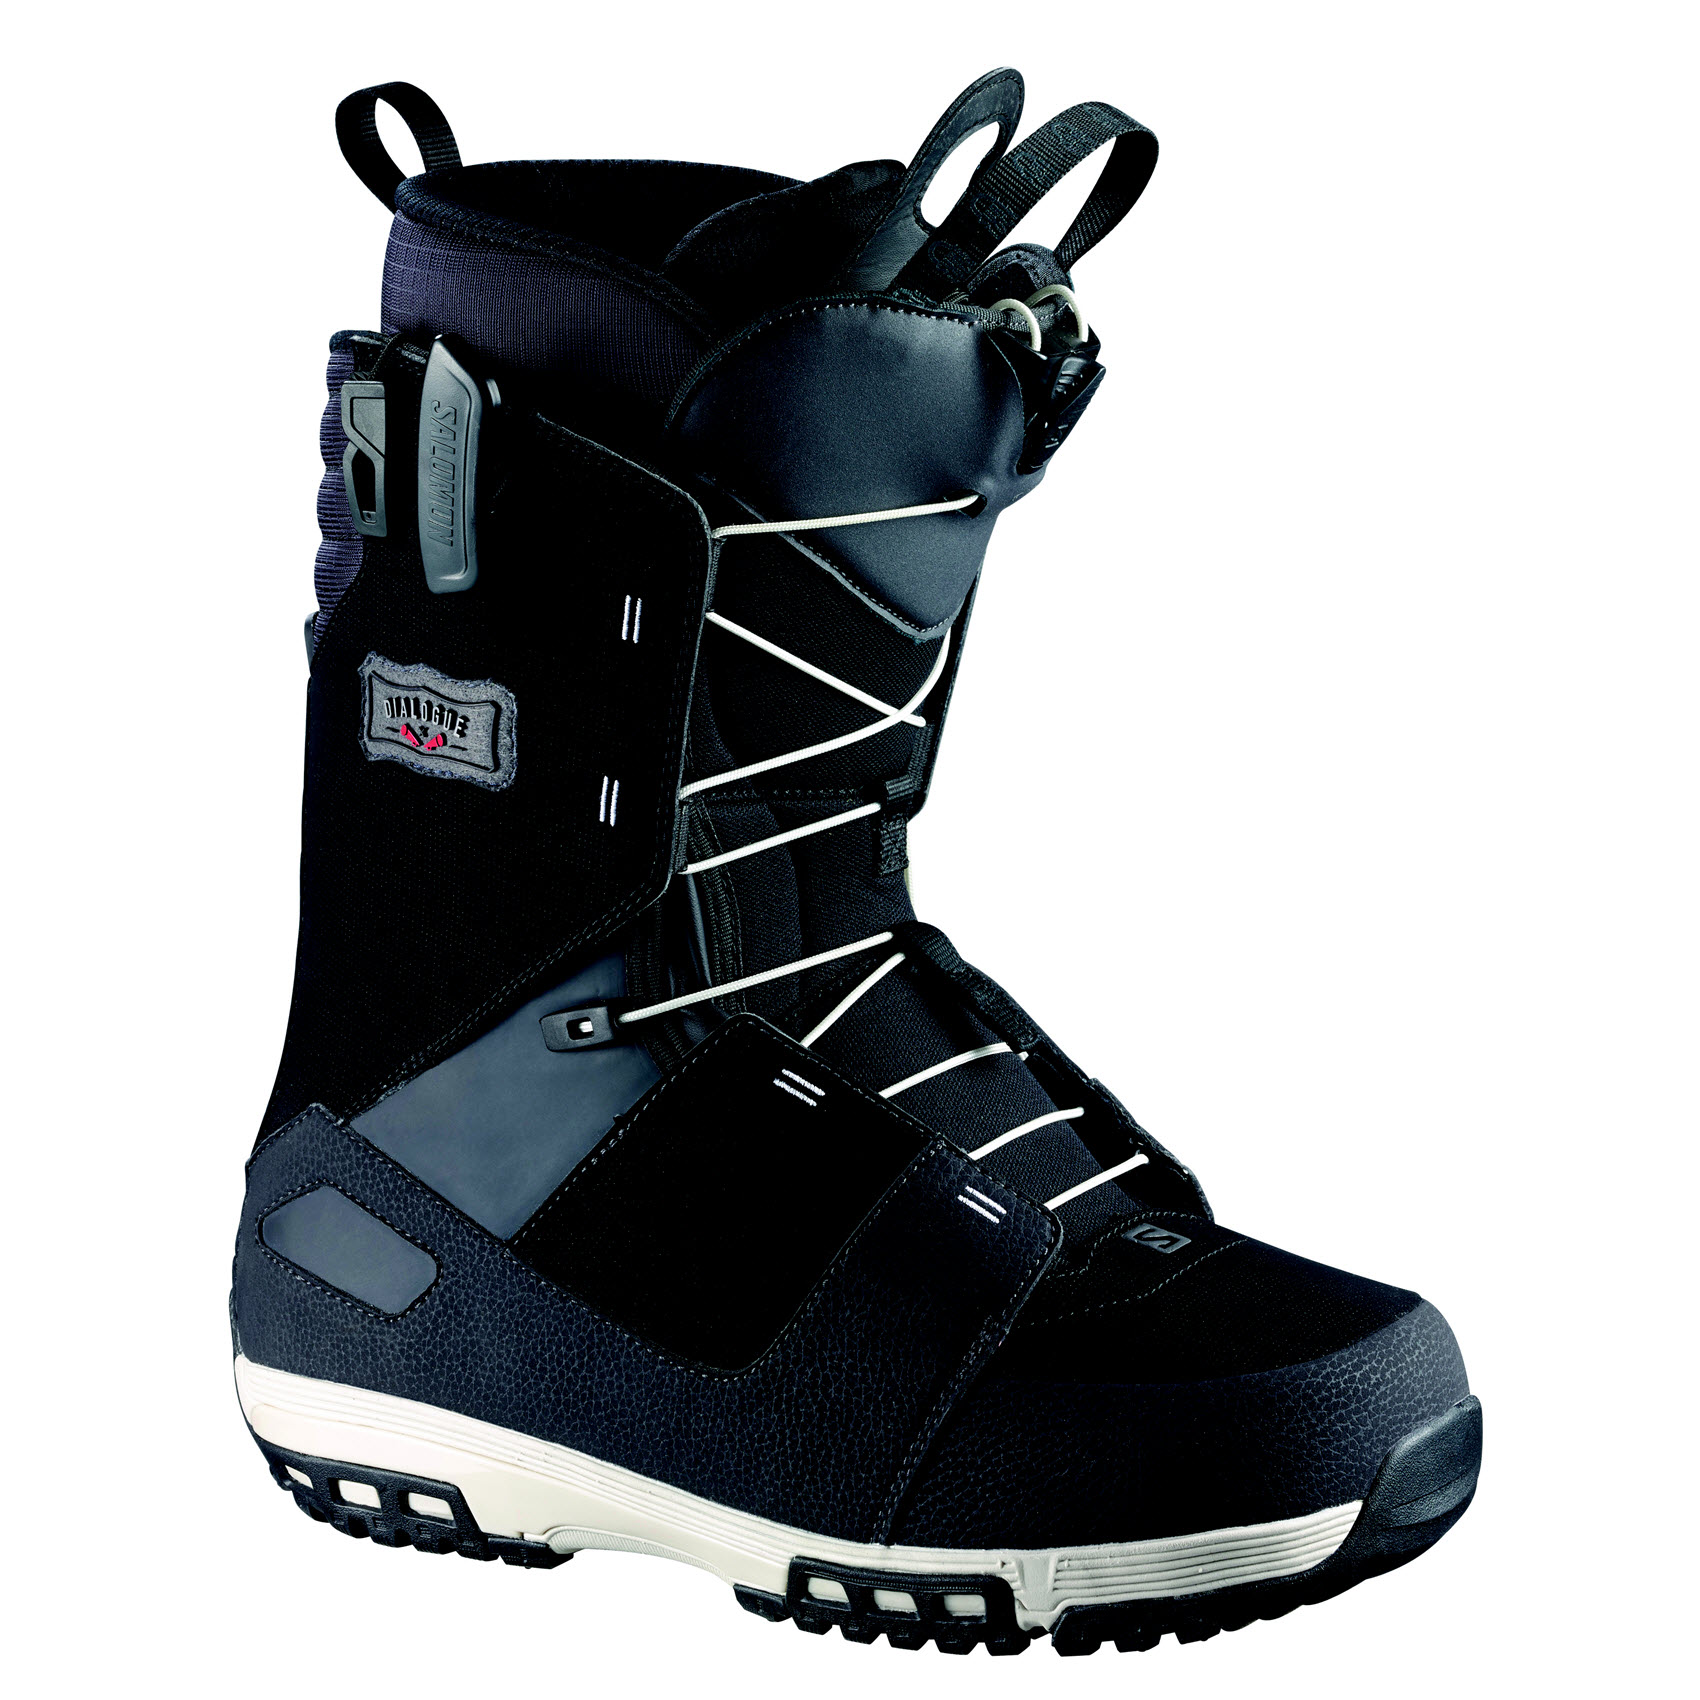 Salomon Dialogue Wide Mens Snowboard Boots 2015 Black Asphalt Grey